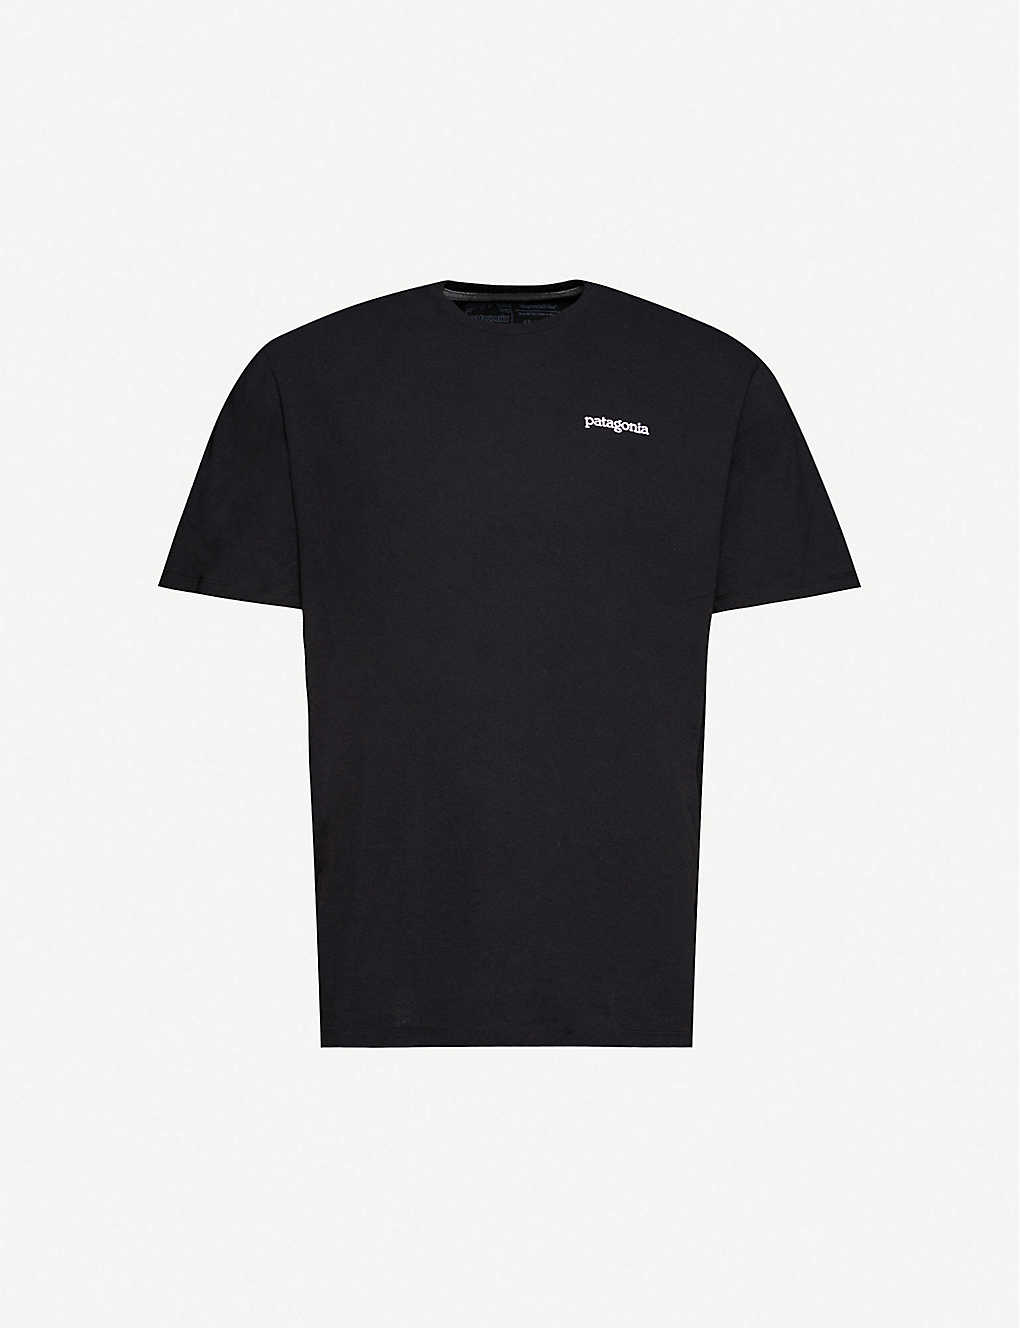 PATAGONIA: Logo-print recycled cotton-blend jersey T-shirt